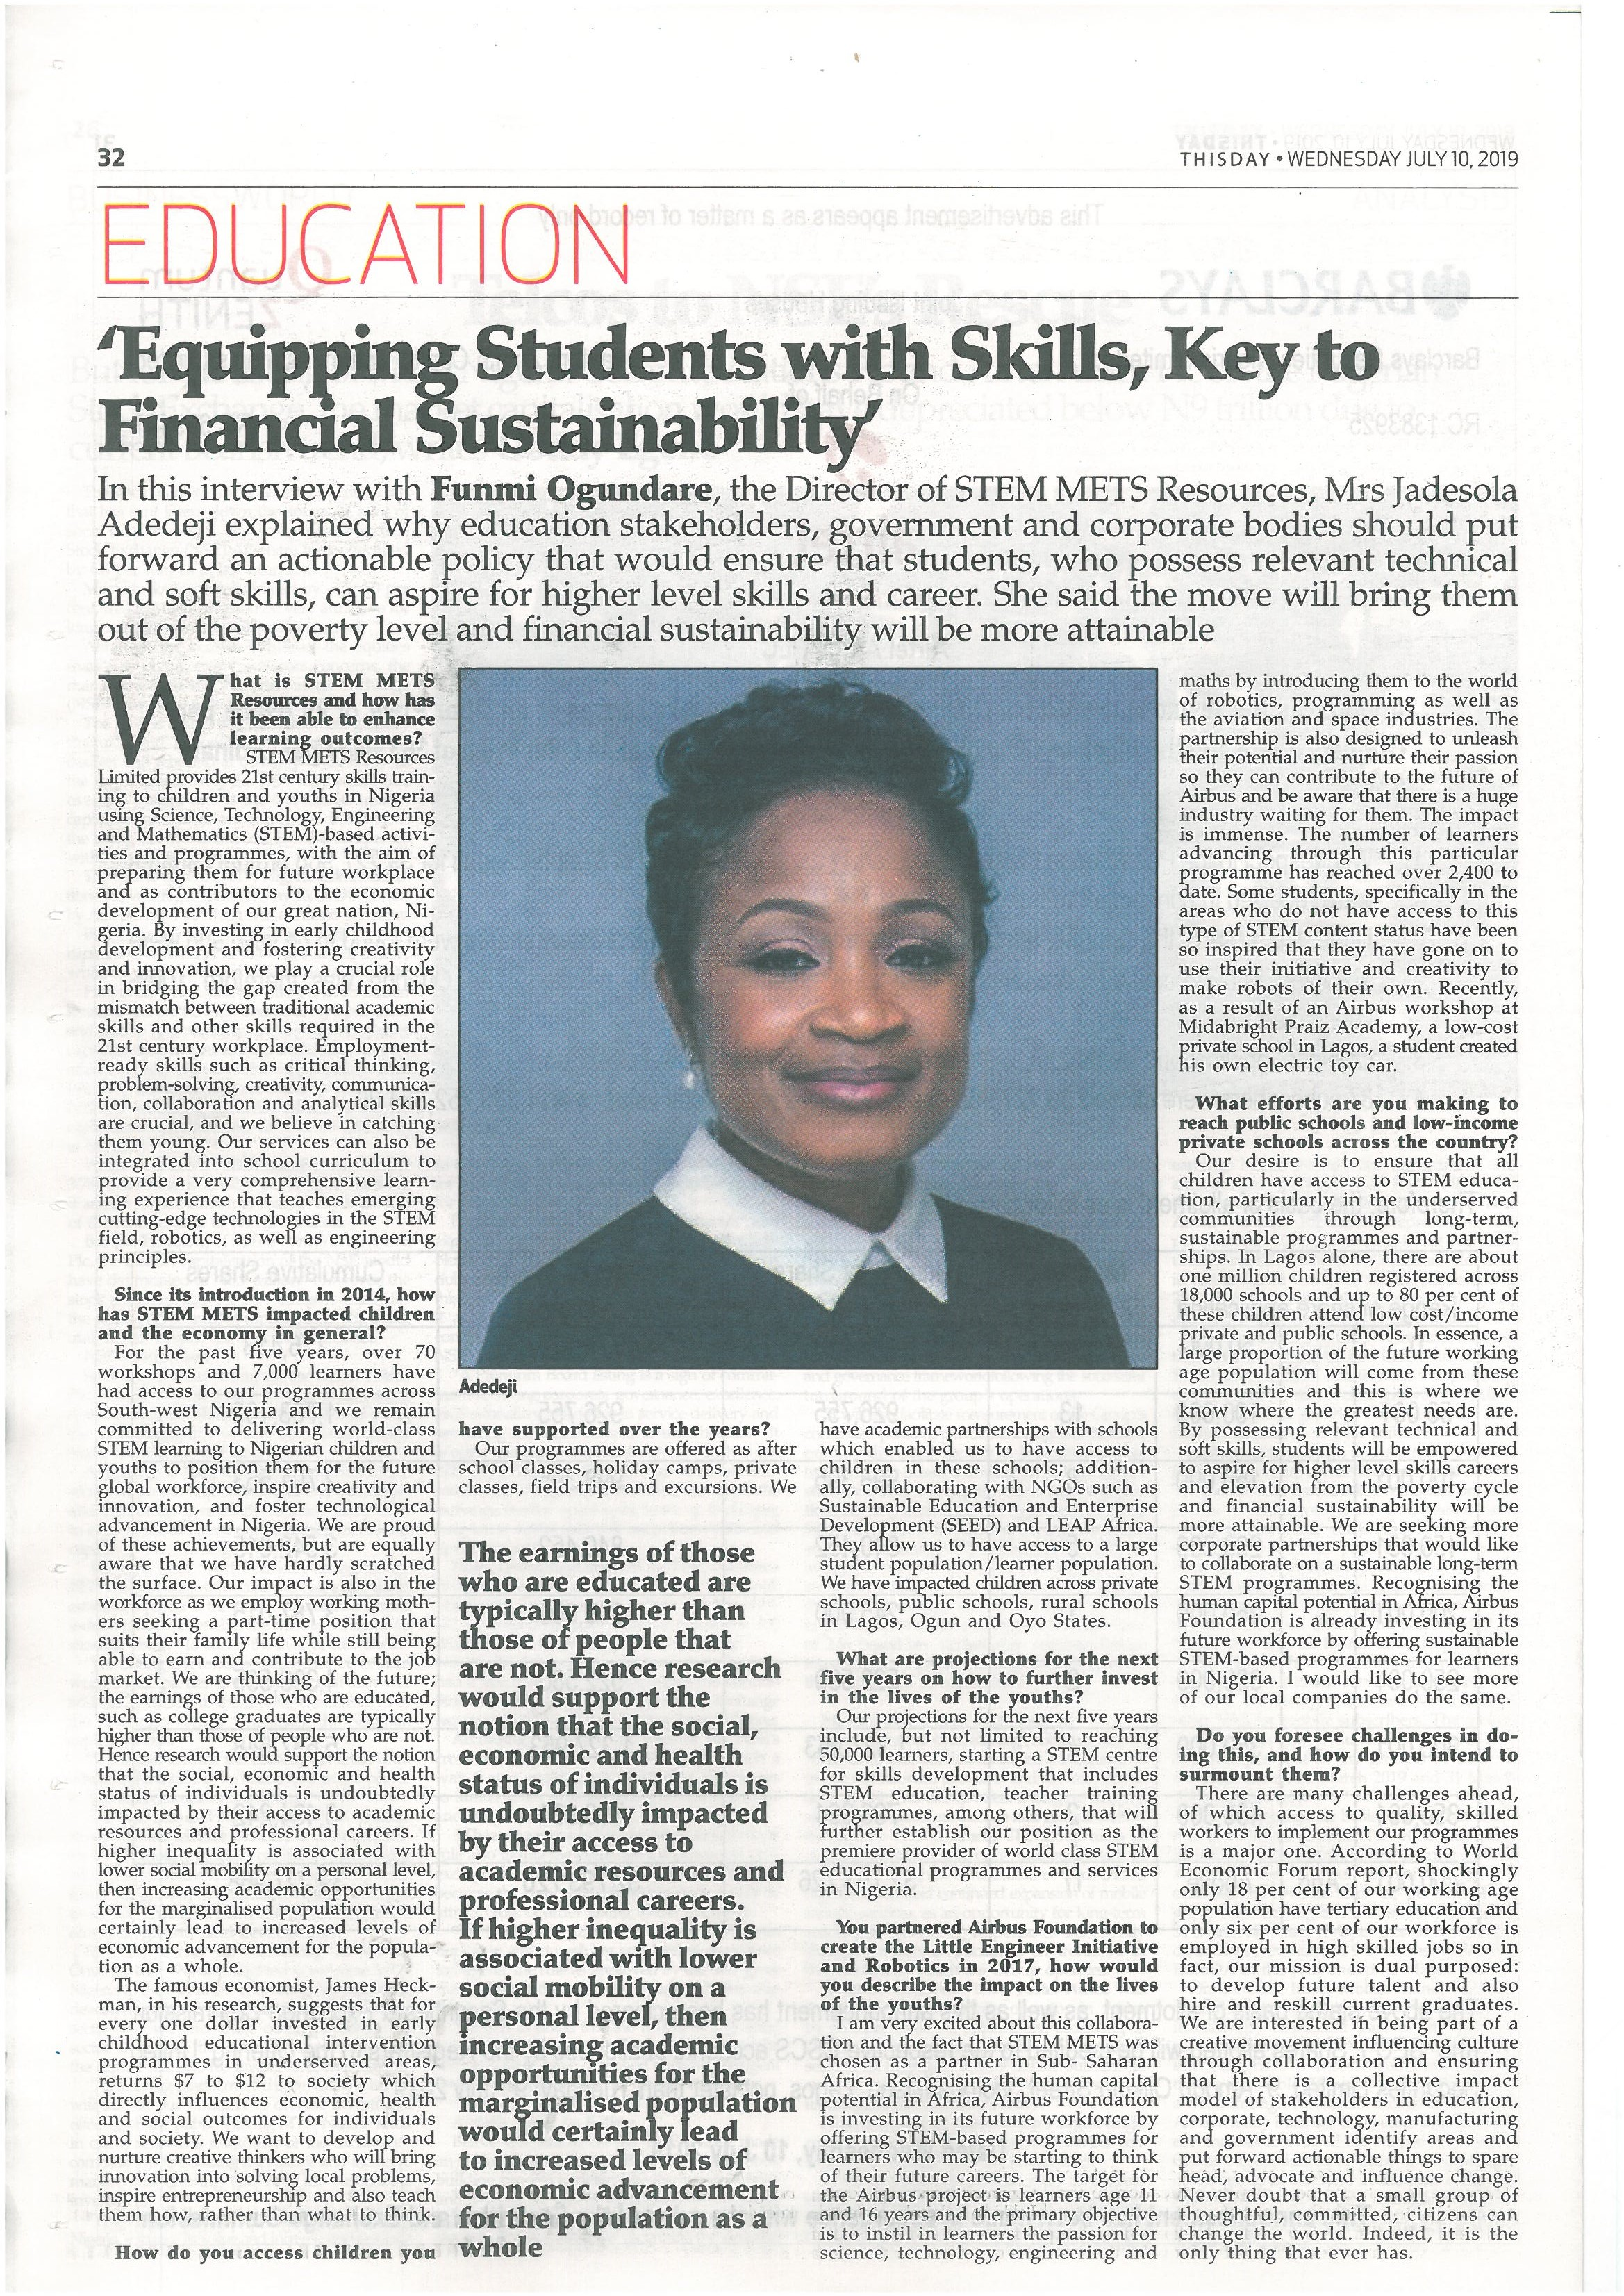 Equipping Students with Skills, Key to Financial Sustainability